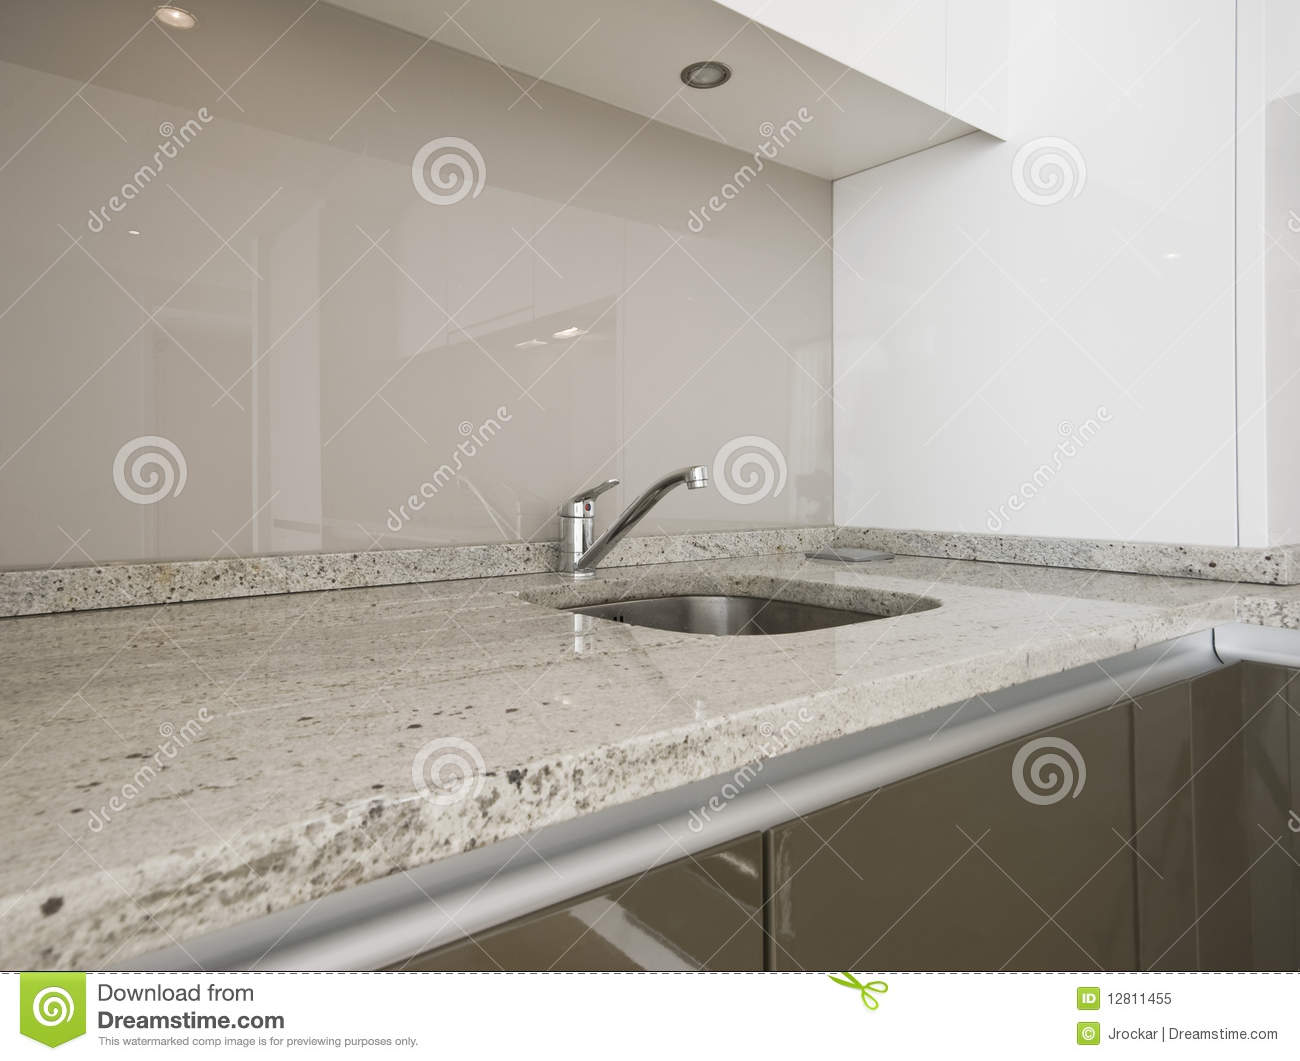 Kitchen Counter Close Up kitchen counter closeup royalty free stock photo - image: 12811455